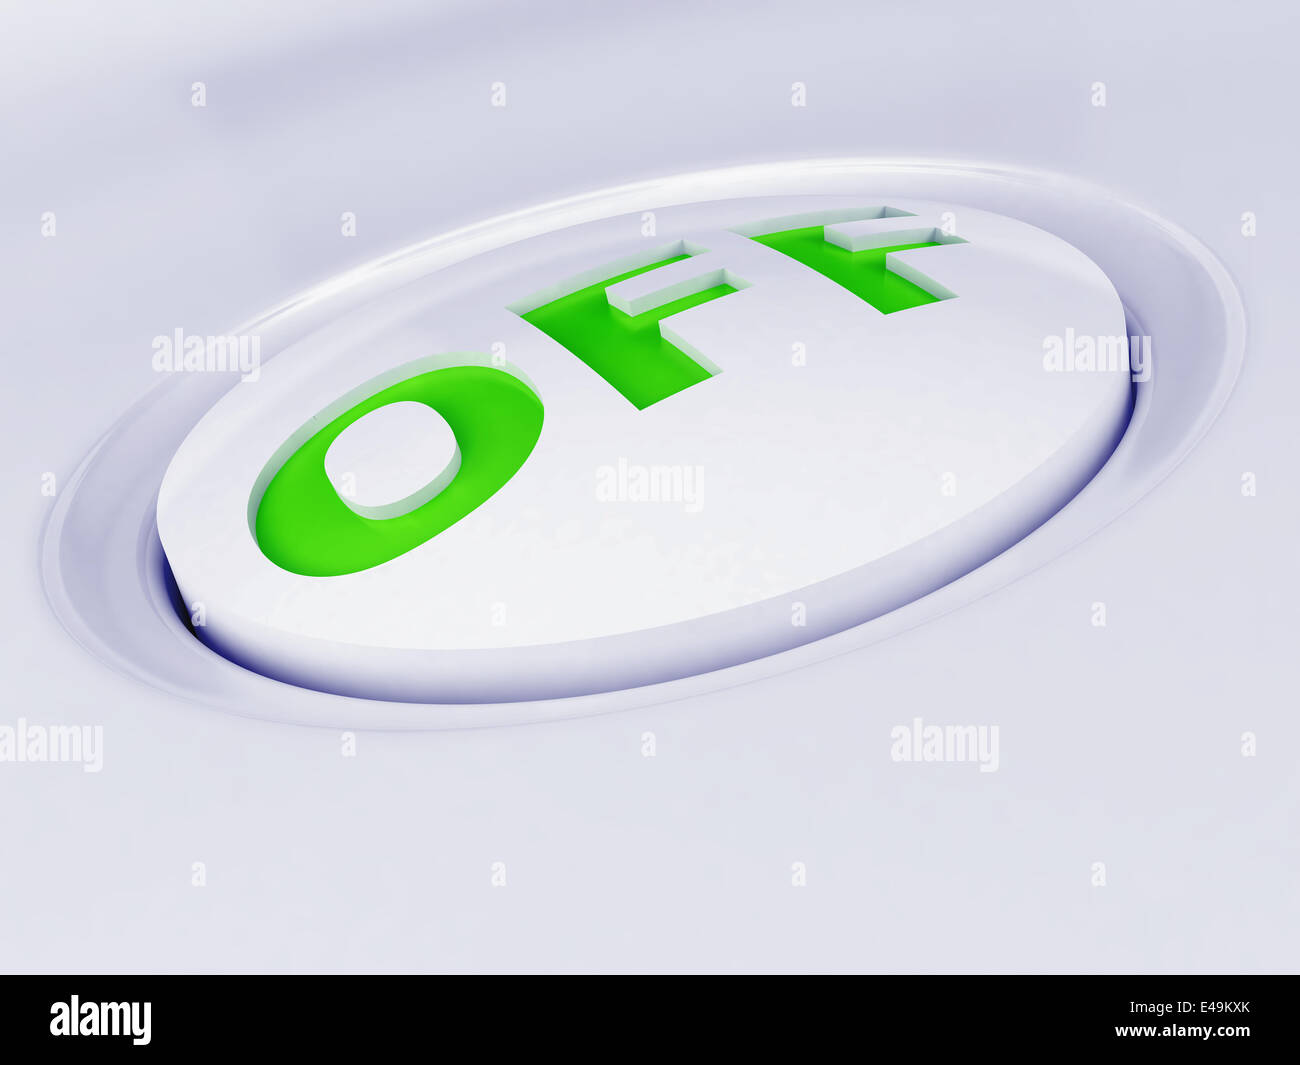 white plastic button with a green sign - Stock Image